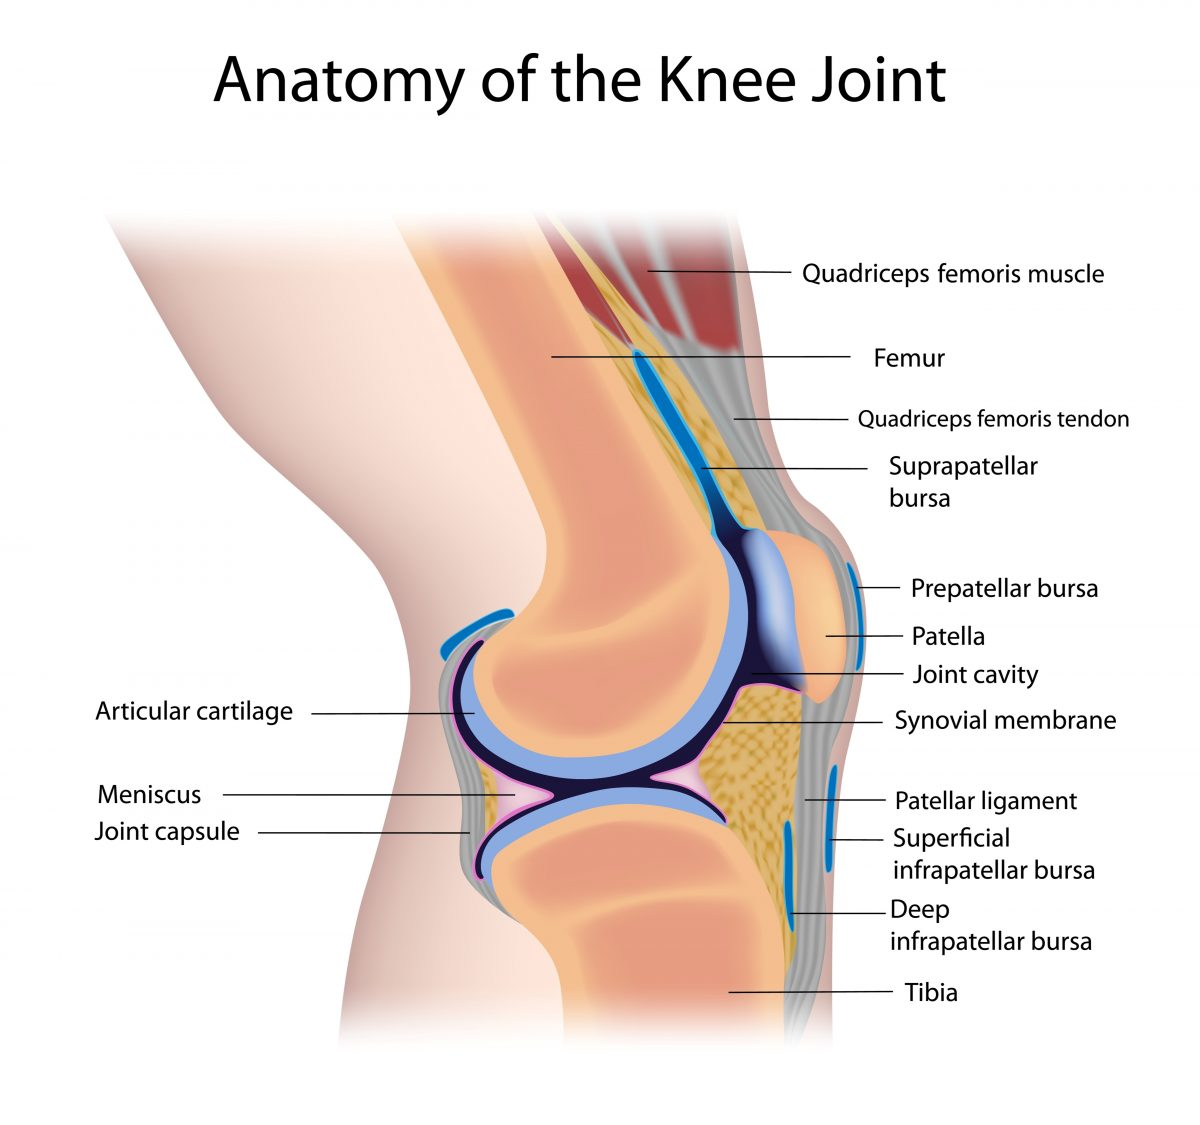 How to Protect Your Knees and Make Them Healthy